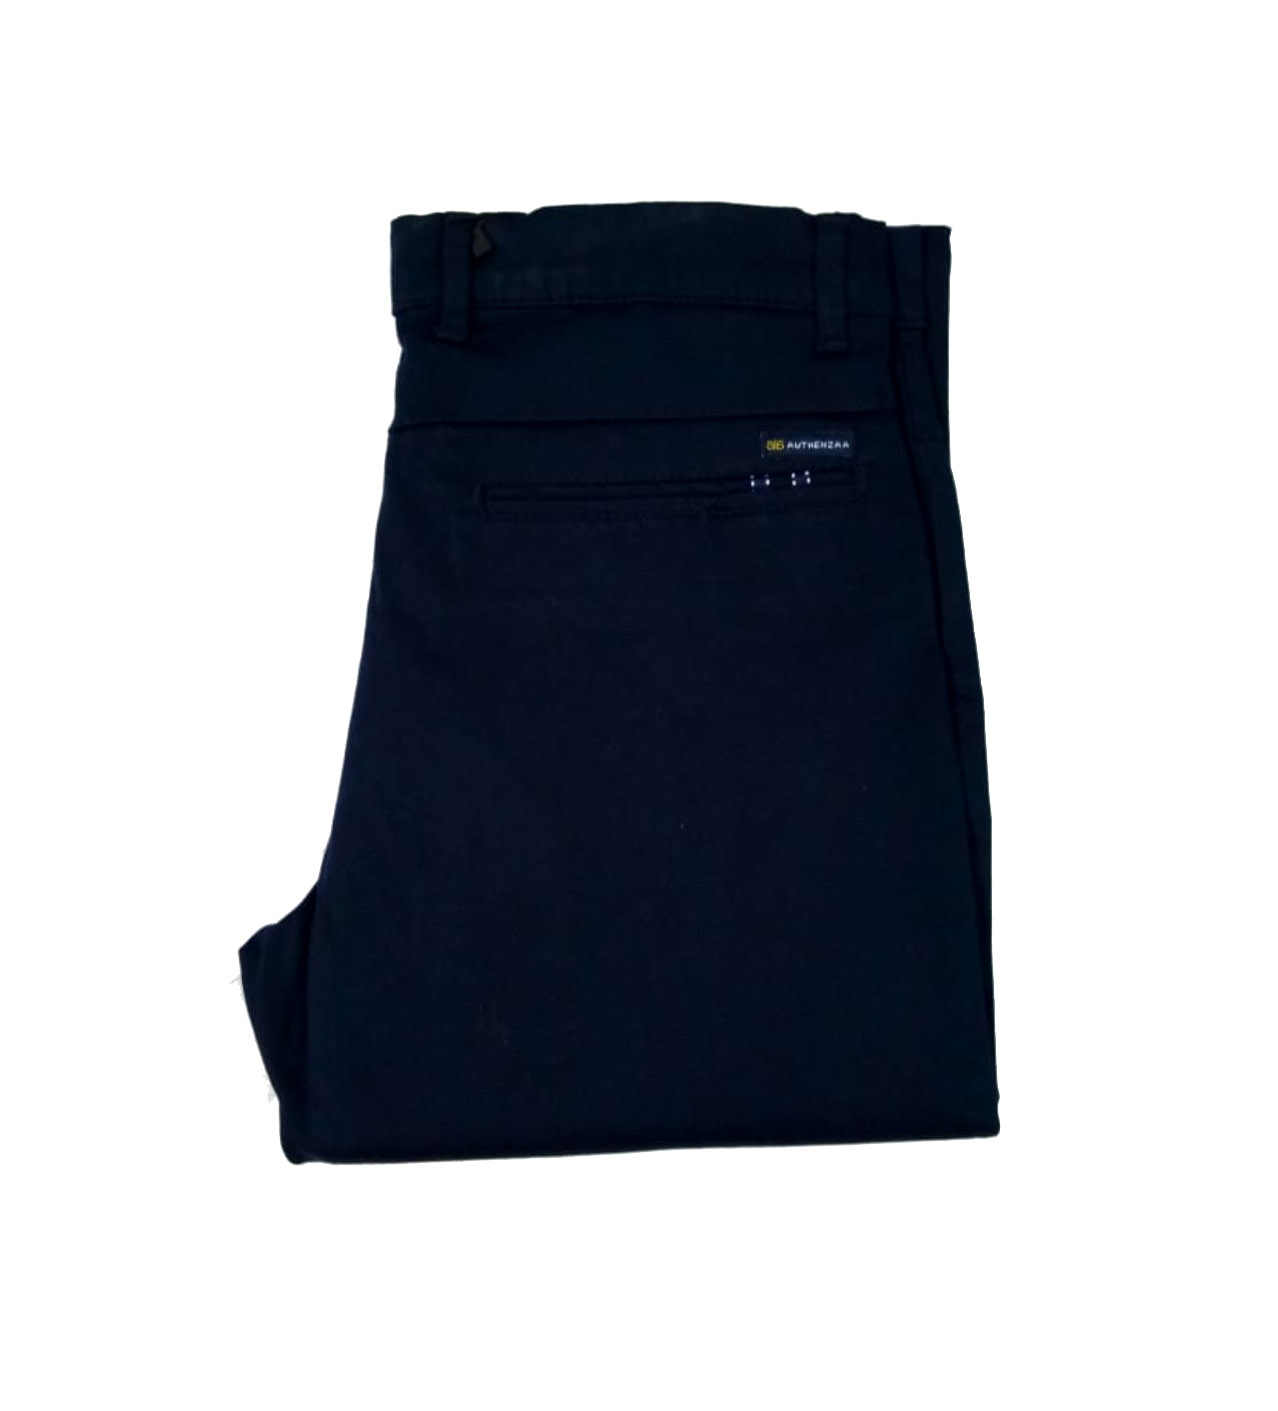 UTD SEP SATIN 01 2019-NAVY BLUE MEN CASUAL TROUSER